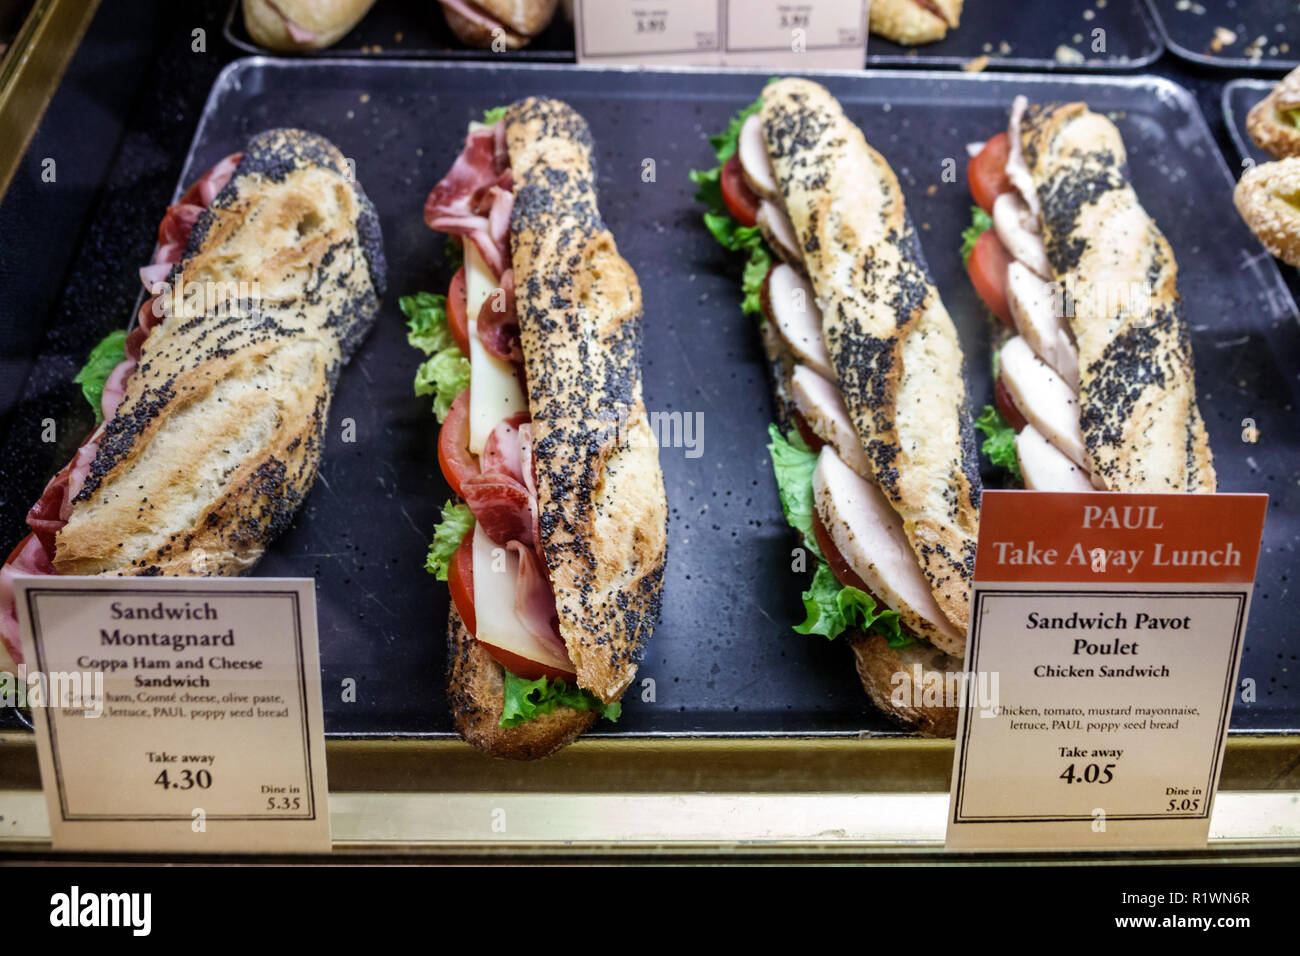 London England United Kingdom Great Britain South Kensington PAUL Bakery & Cafe artisanal take-away bread bagette Montagnard sandwich Pavot Poulet chi Stock Photo